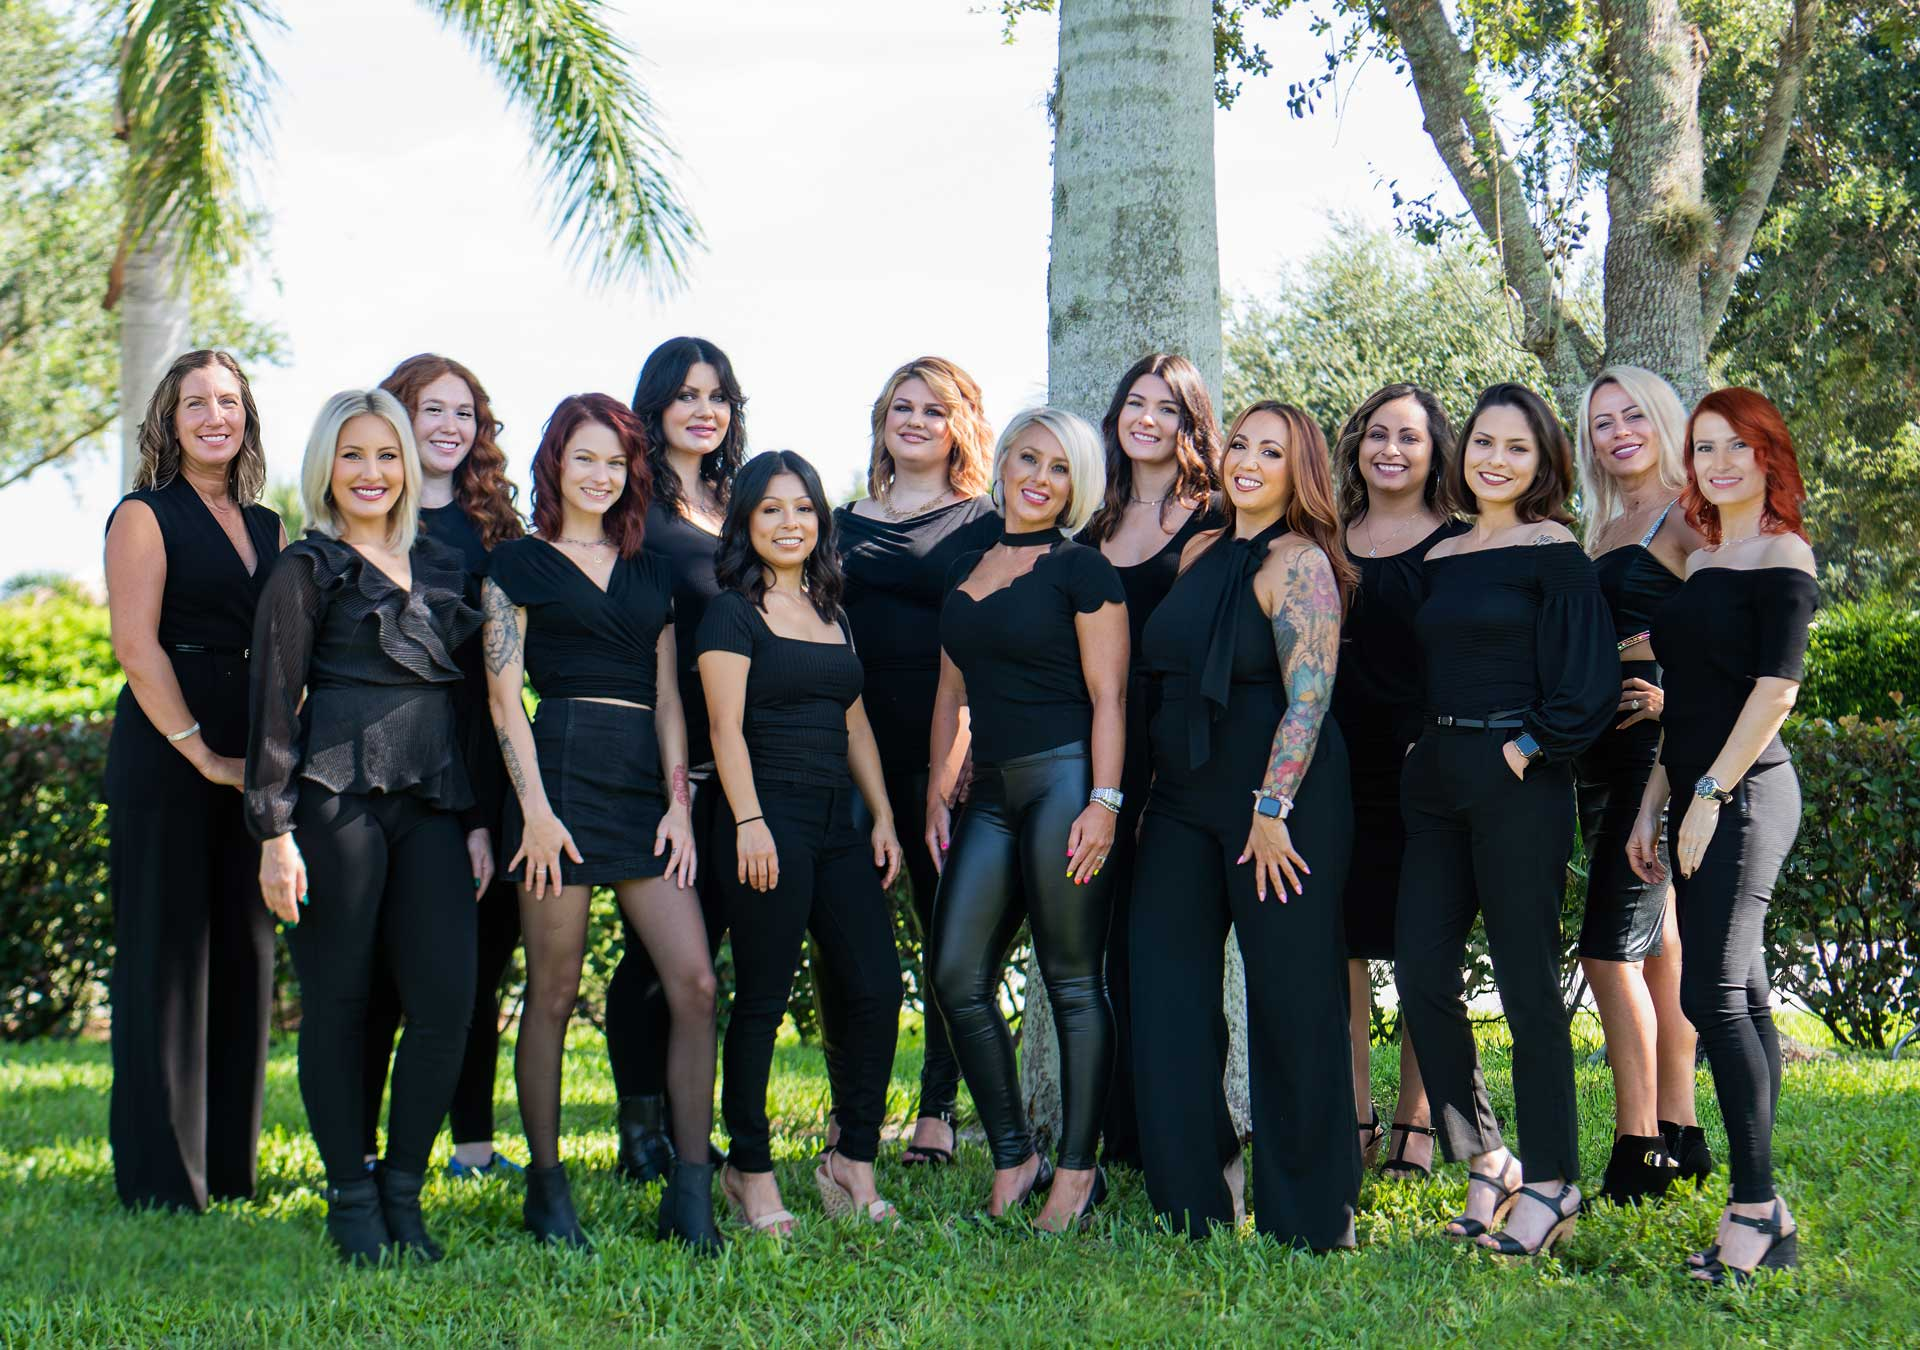 The beauty District team group shot